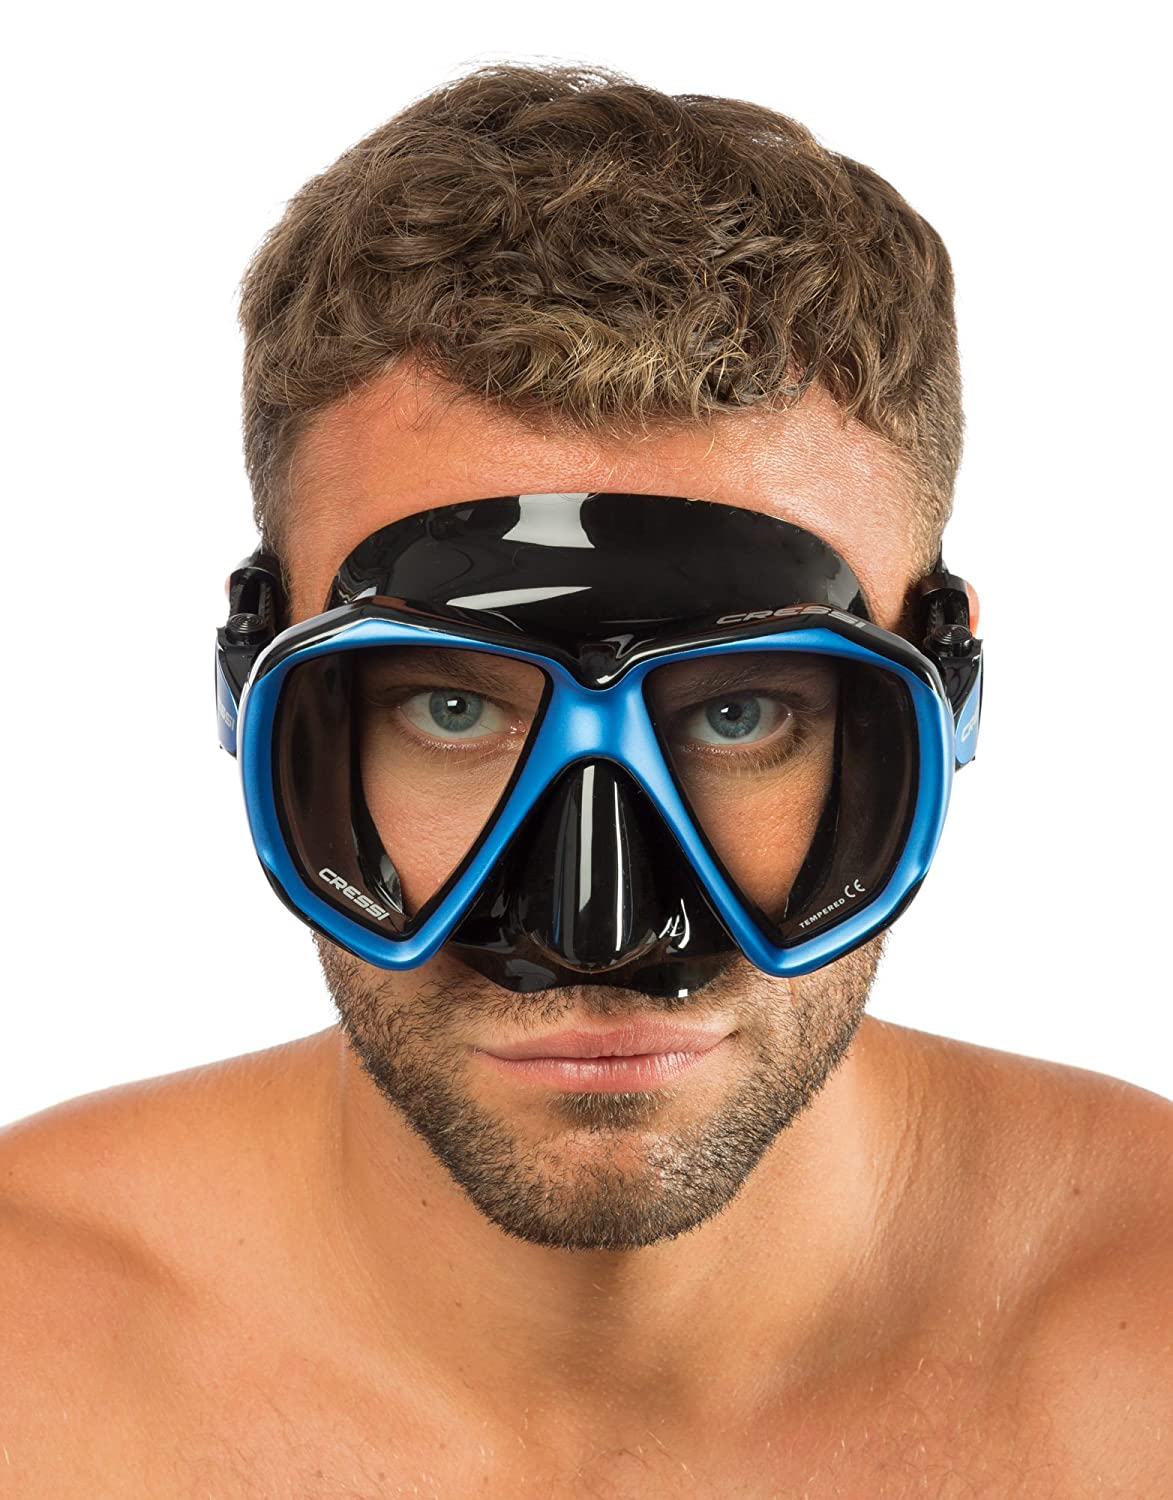 Cressi Adult Scuba Diving Snorkeling Mask in Pure Comfortable Silicone Liberty Duo SPE